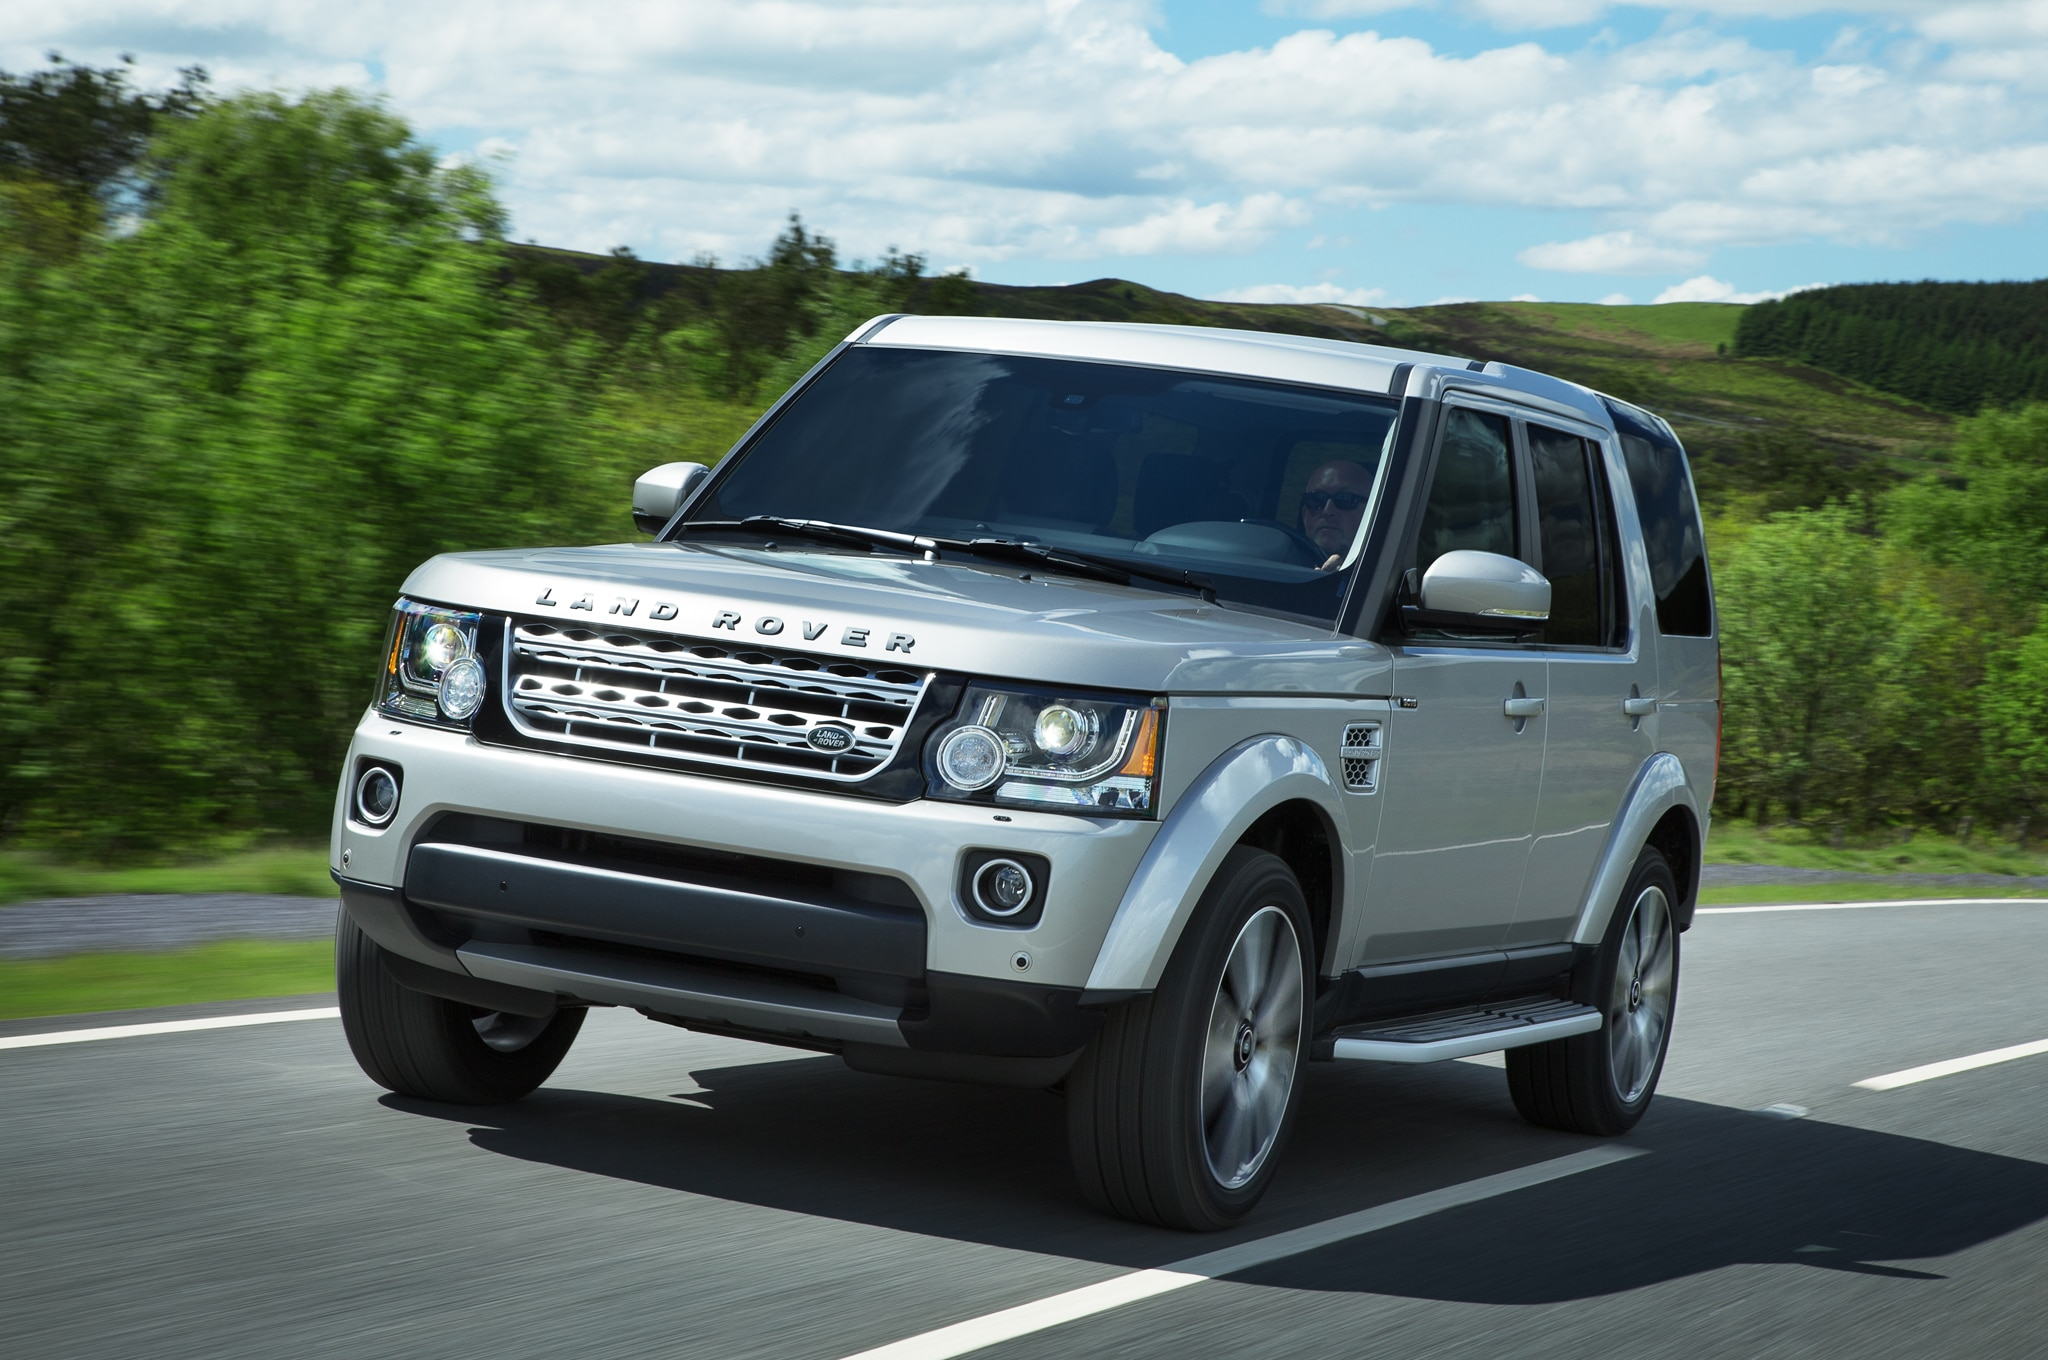 2015 Land Rover LR4 Front Three Quarter In Motion 02